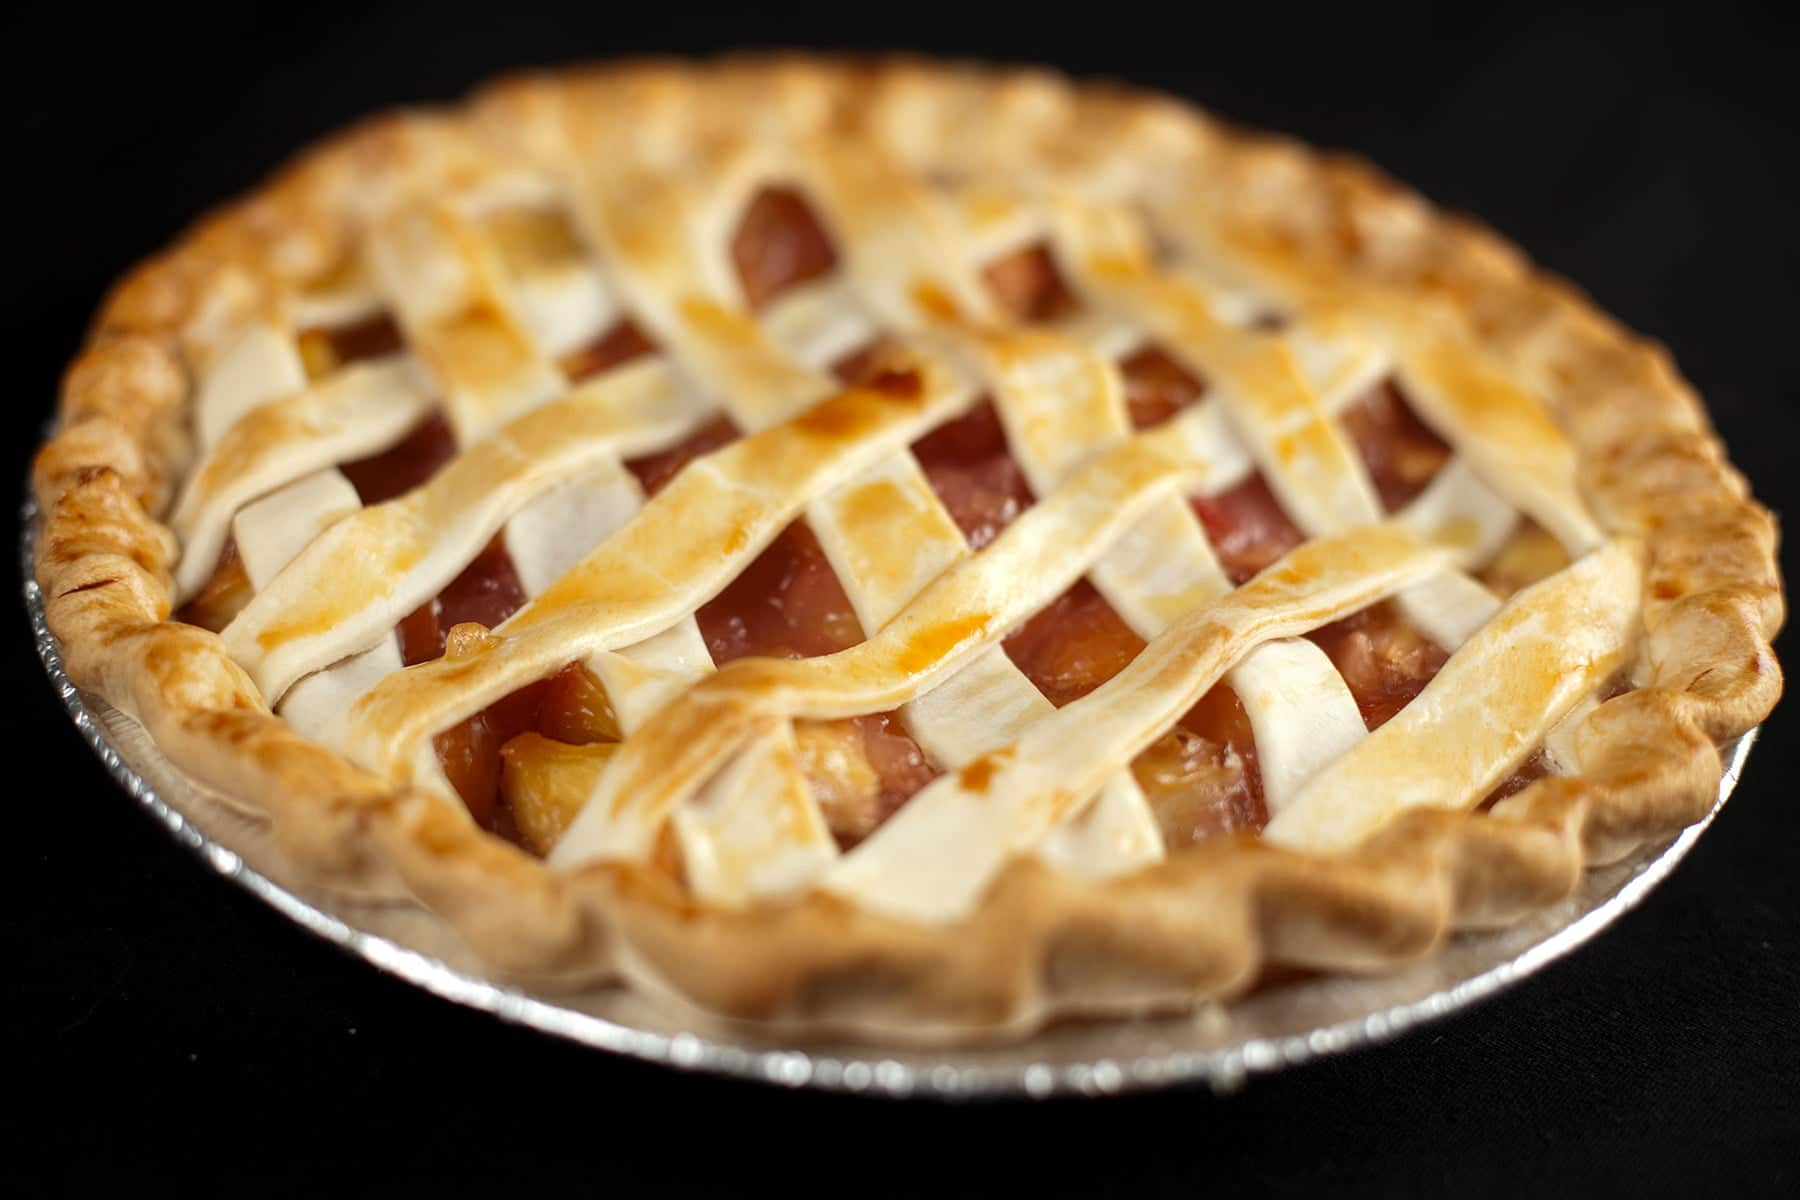 A peach pie with lattice style crust is shown against a black background.